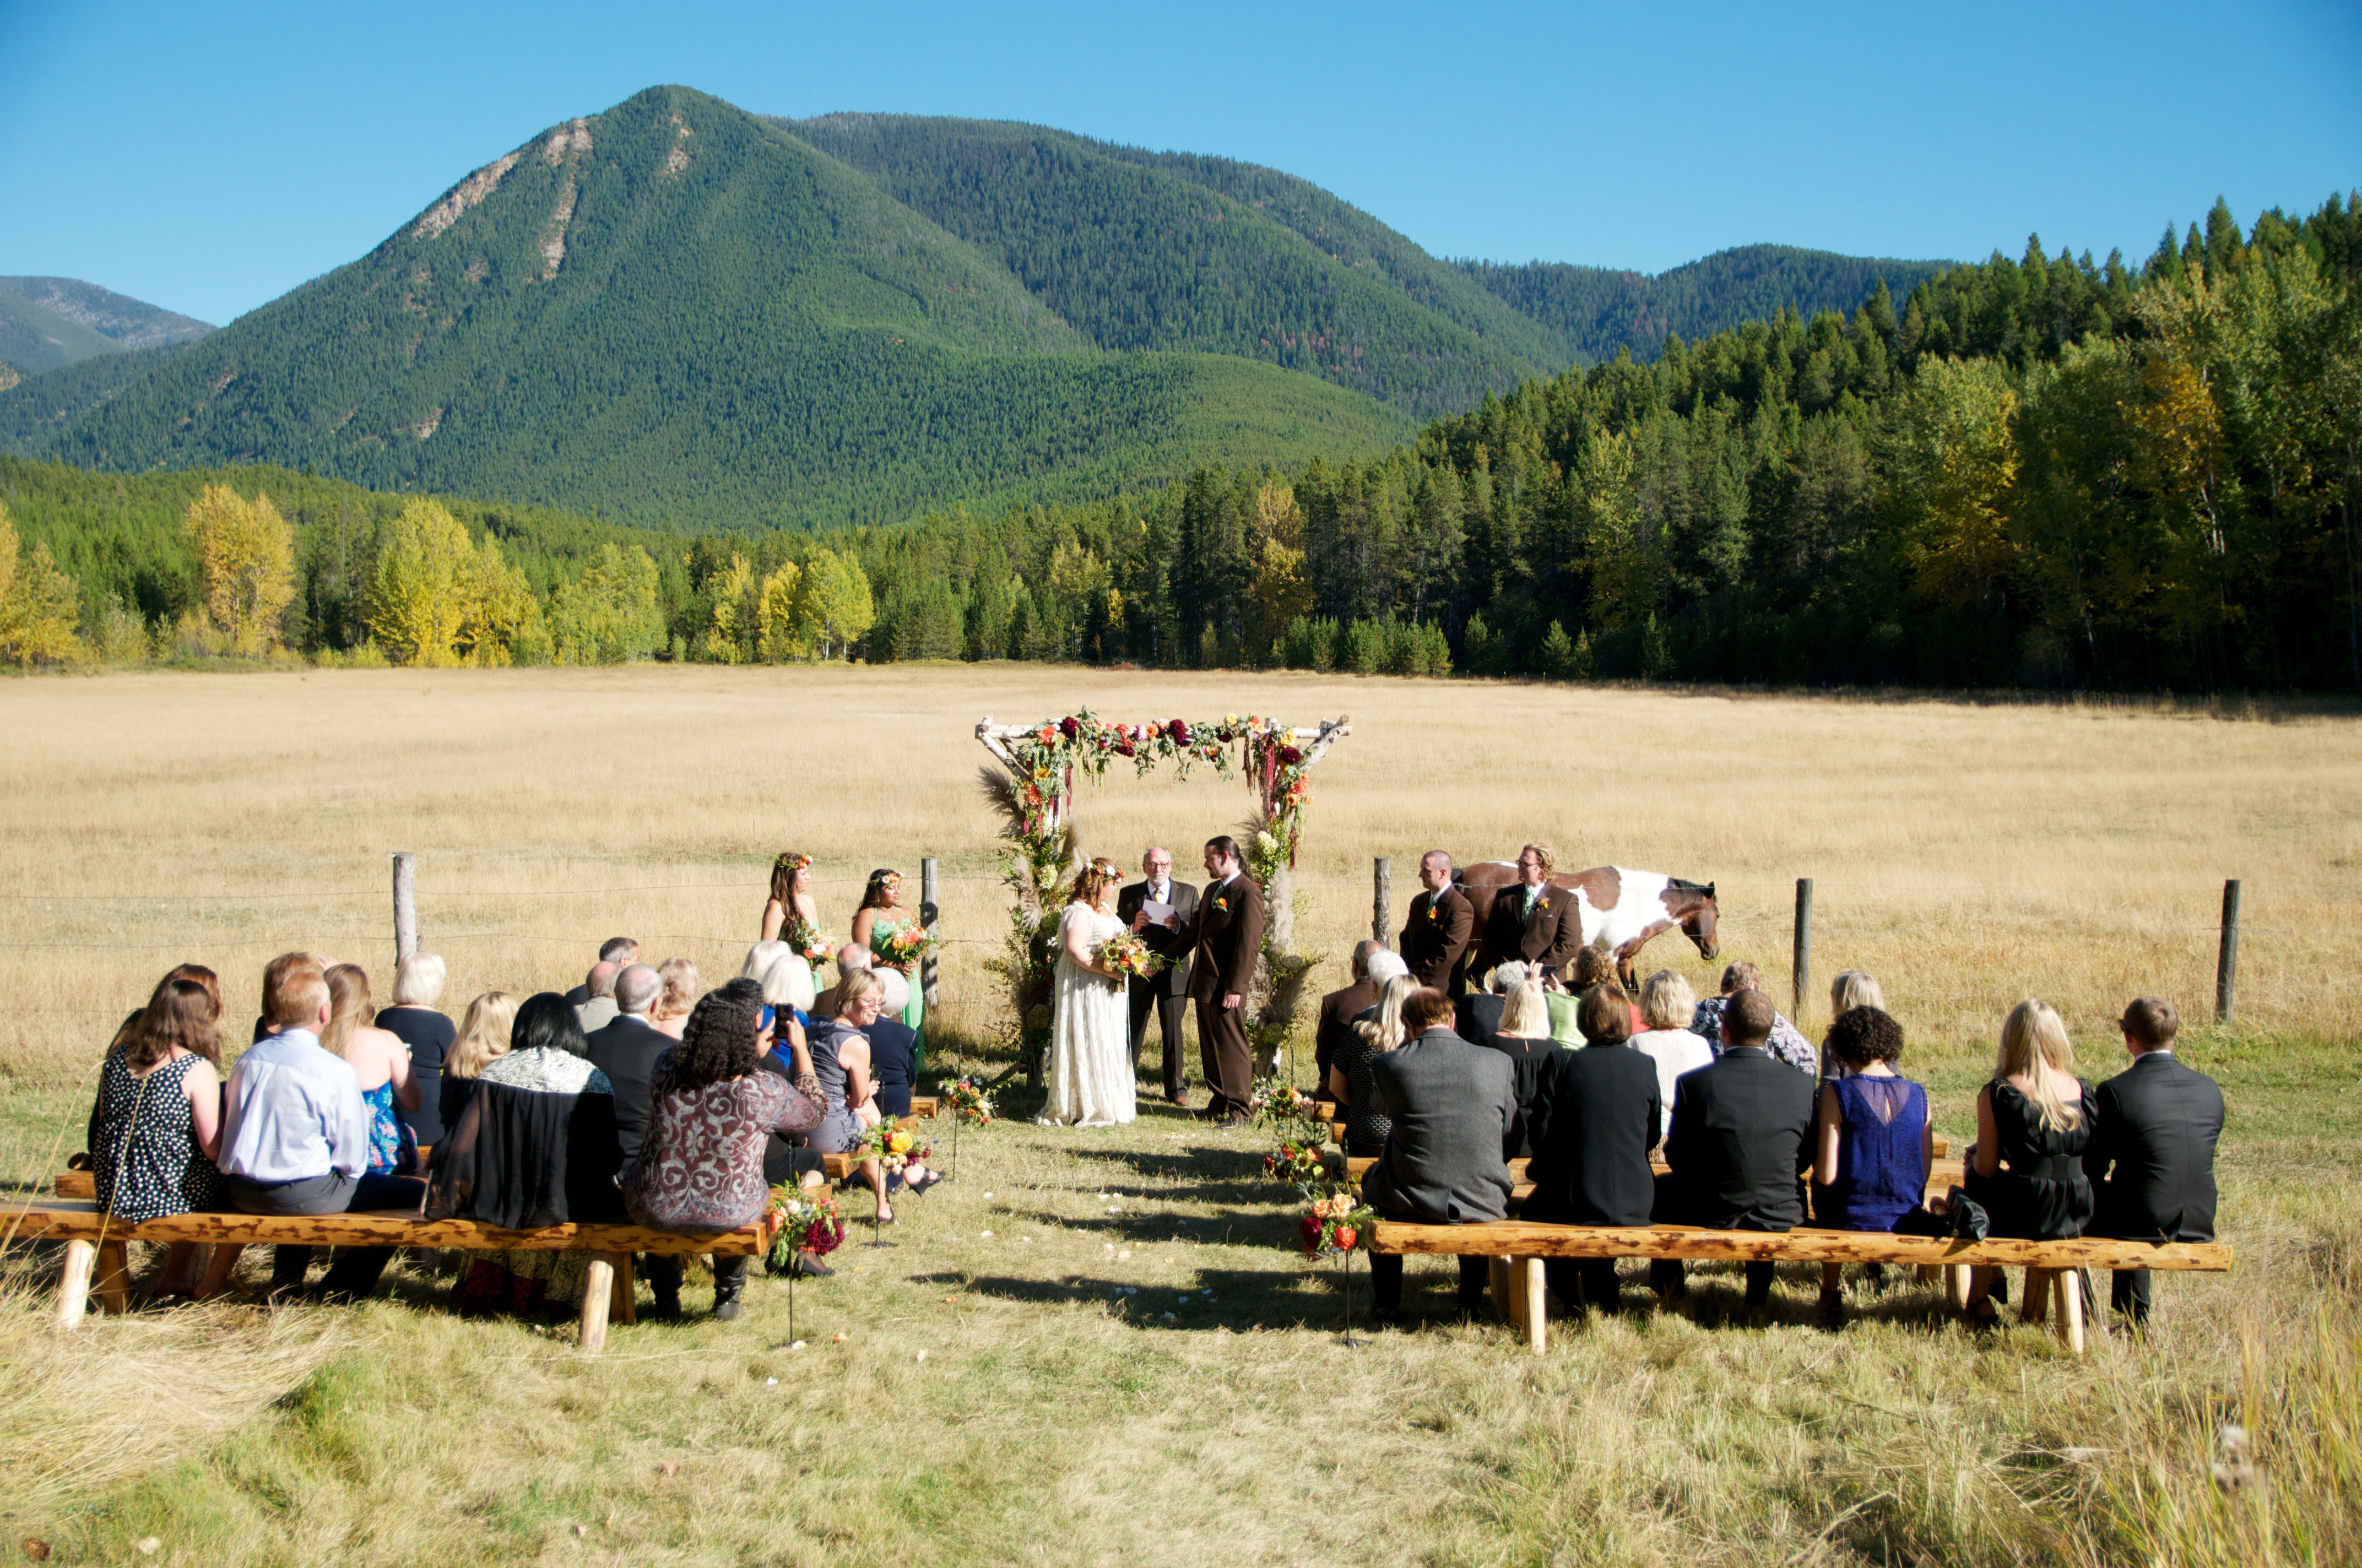 10 Photos From Mountain Weddings That Will Charm You